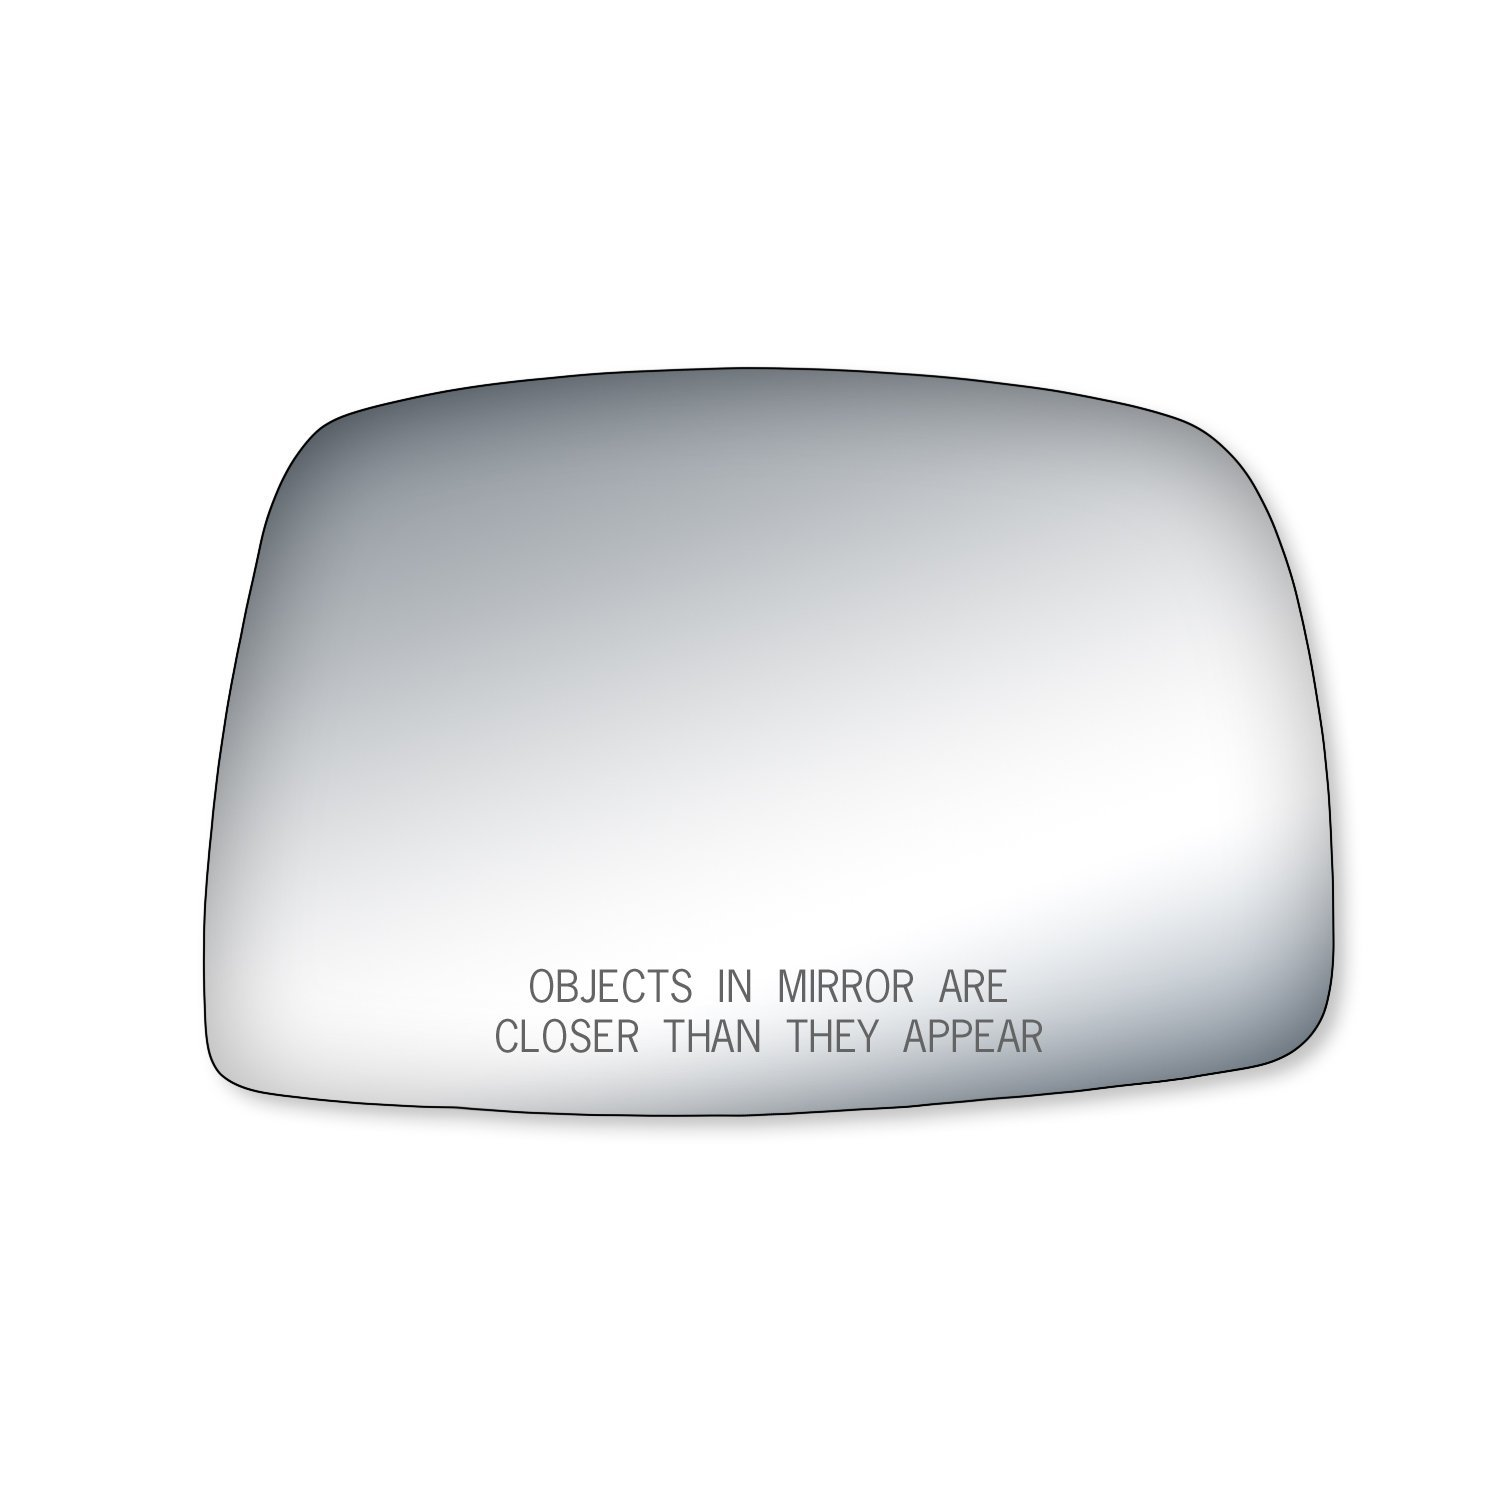 61DdTYAbvxL._SL1500_ Cool toyota Camry 2008 Driver Side Mirror Cars Trend